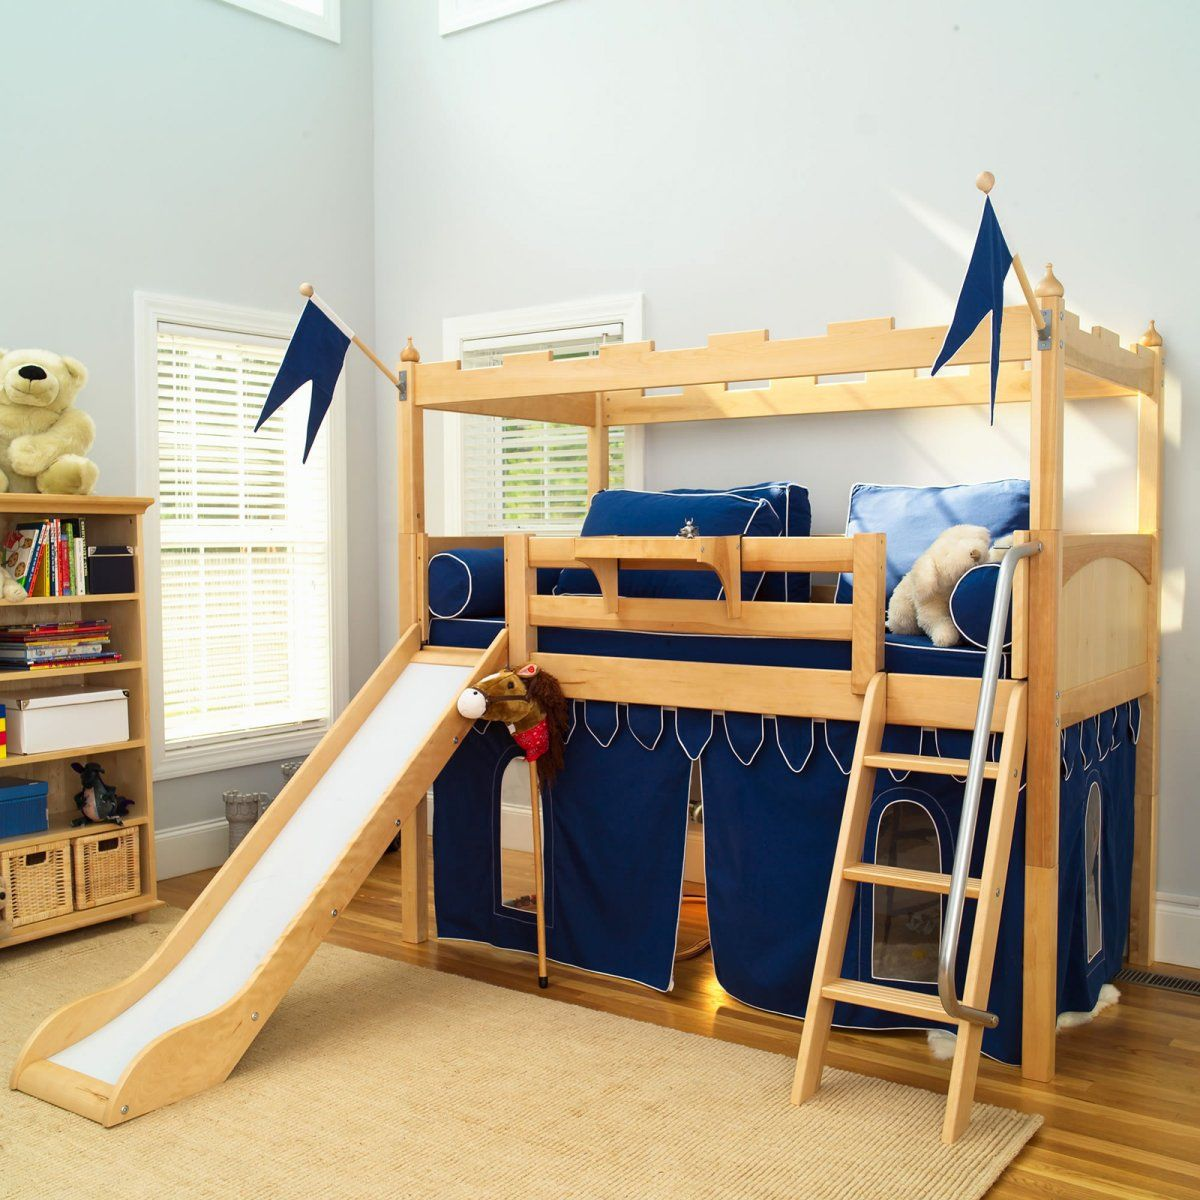 Adorable Low Kids Bunk Bed Idea for Toddler with Wood Frame and